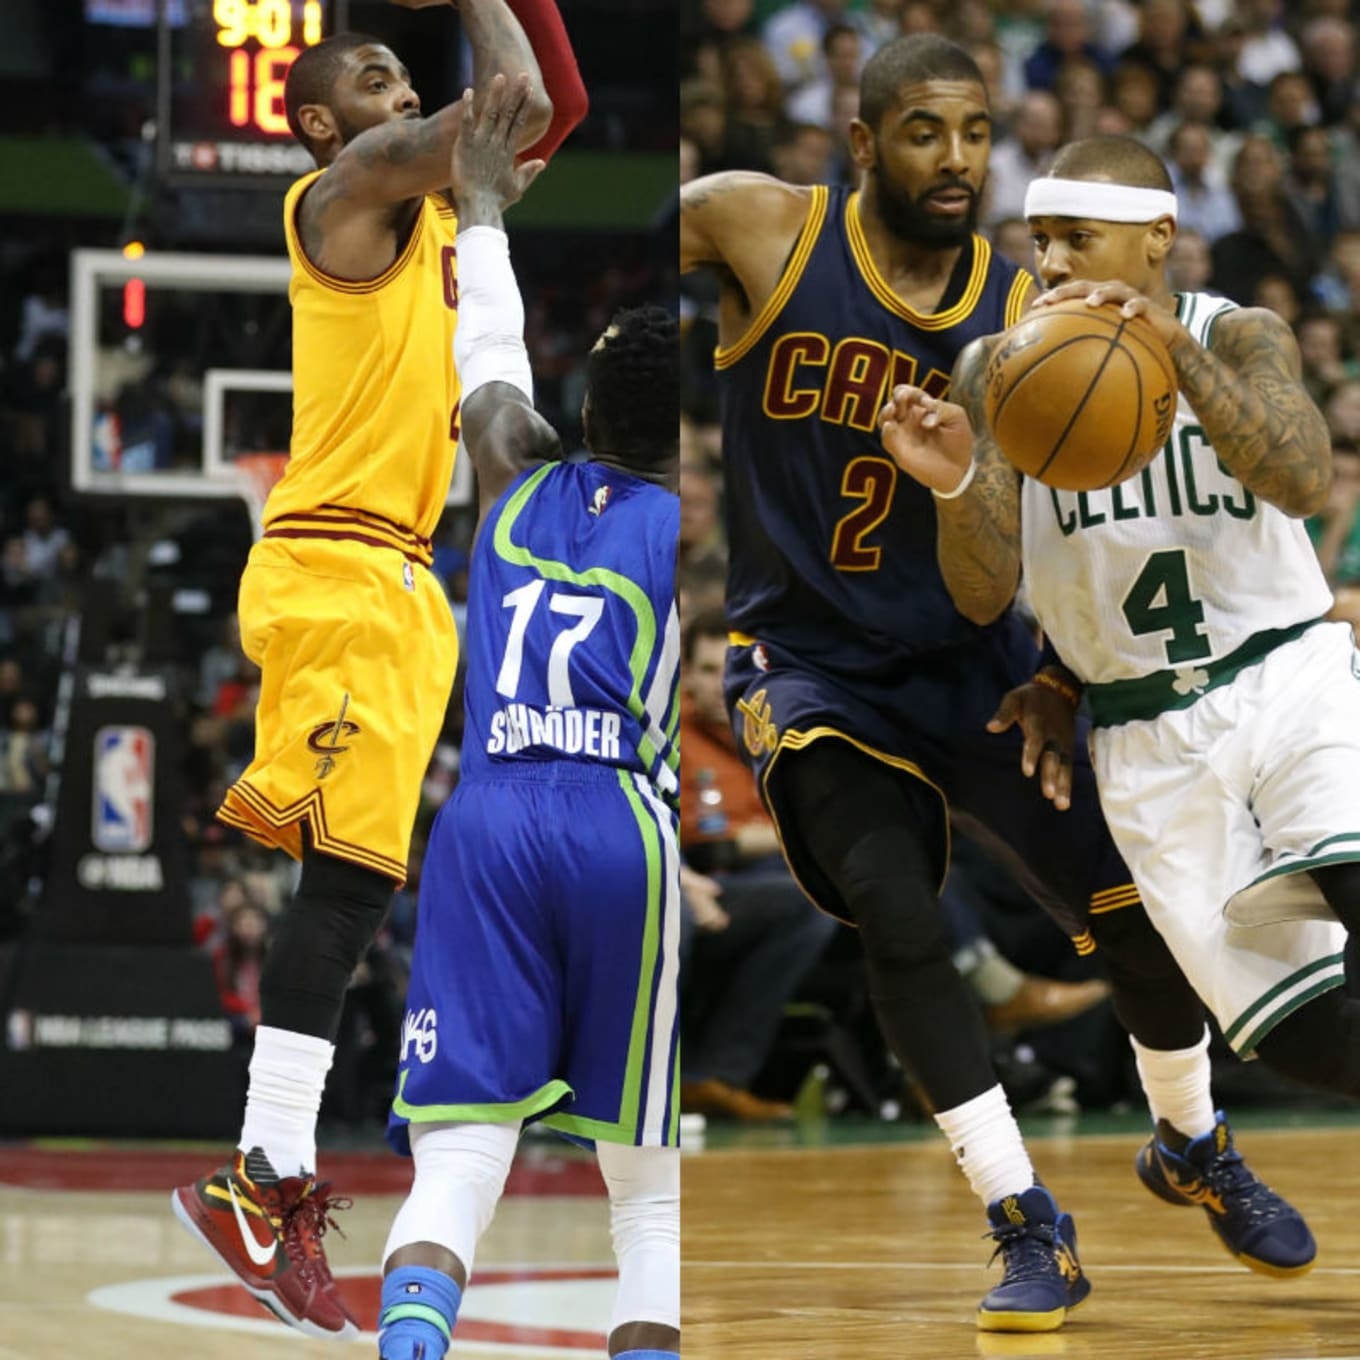 3def7c005 Images via Jason Getz   Greg M. Cooper for USA Today Sports. Team  Cleveland  Cavaliers